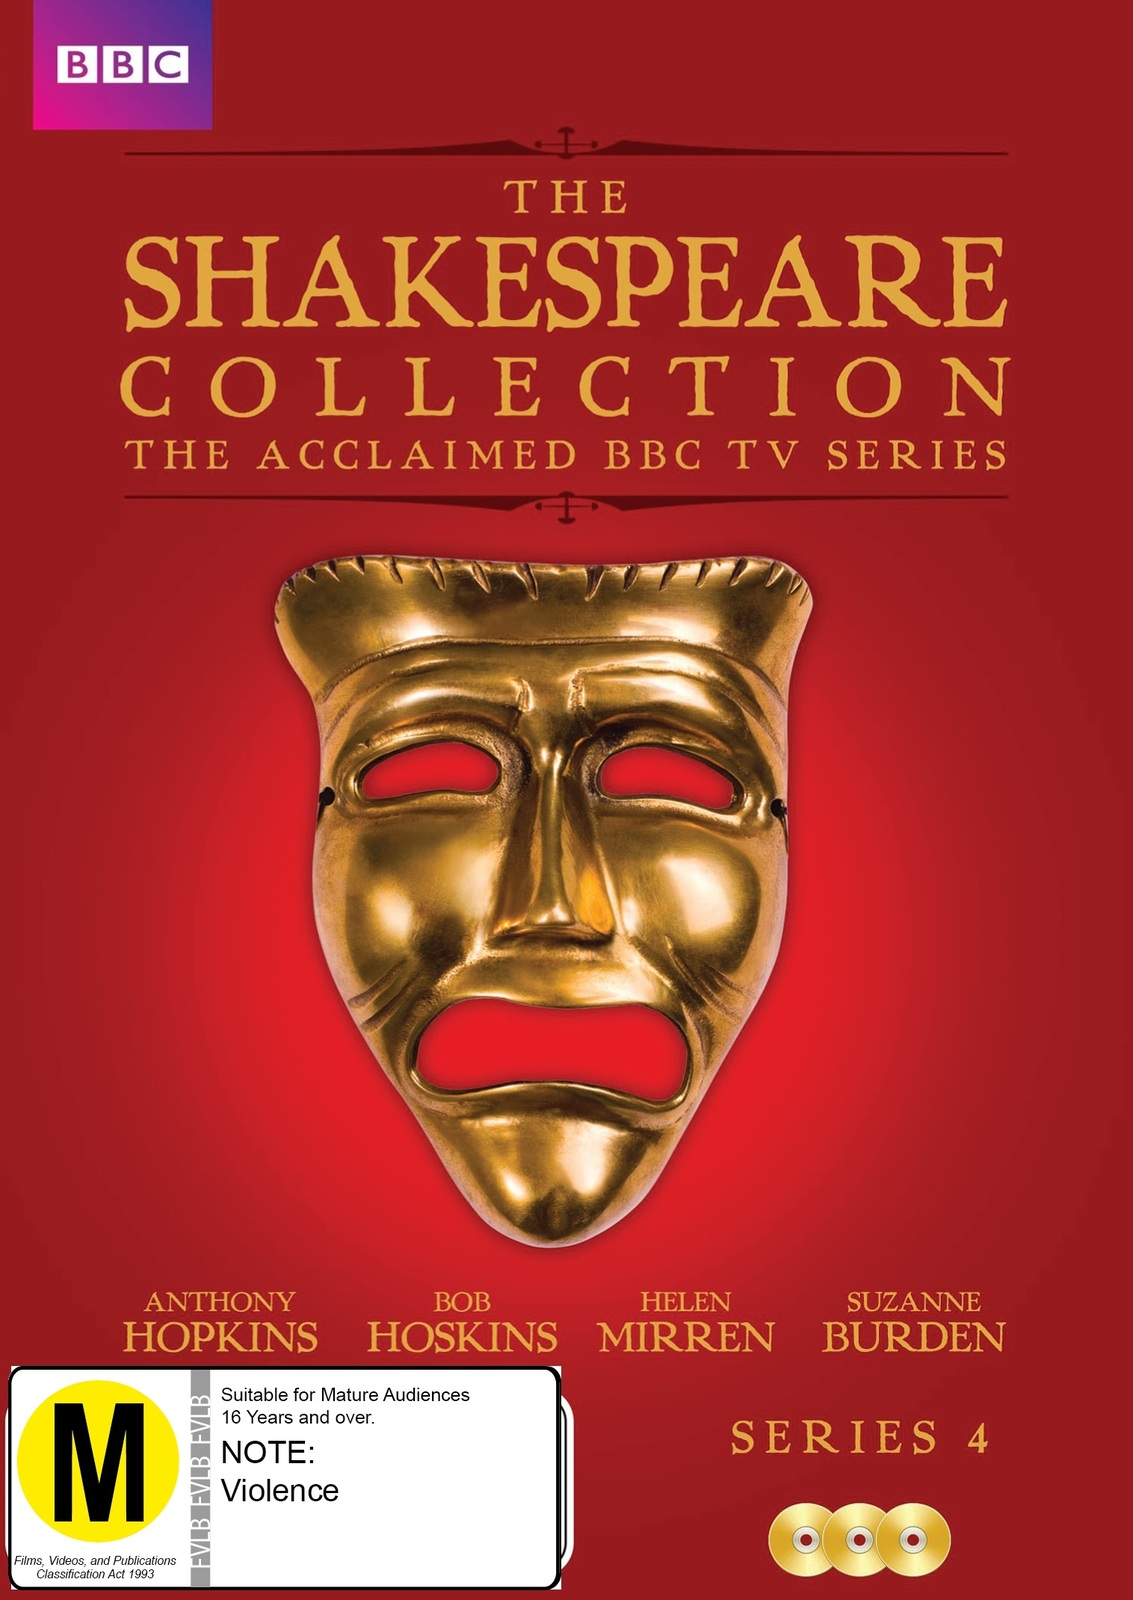 BBC The Shakespeare Collection - Series 4 on DVD image